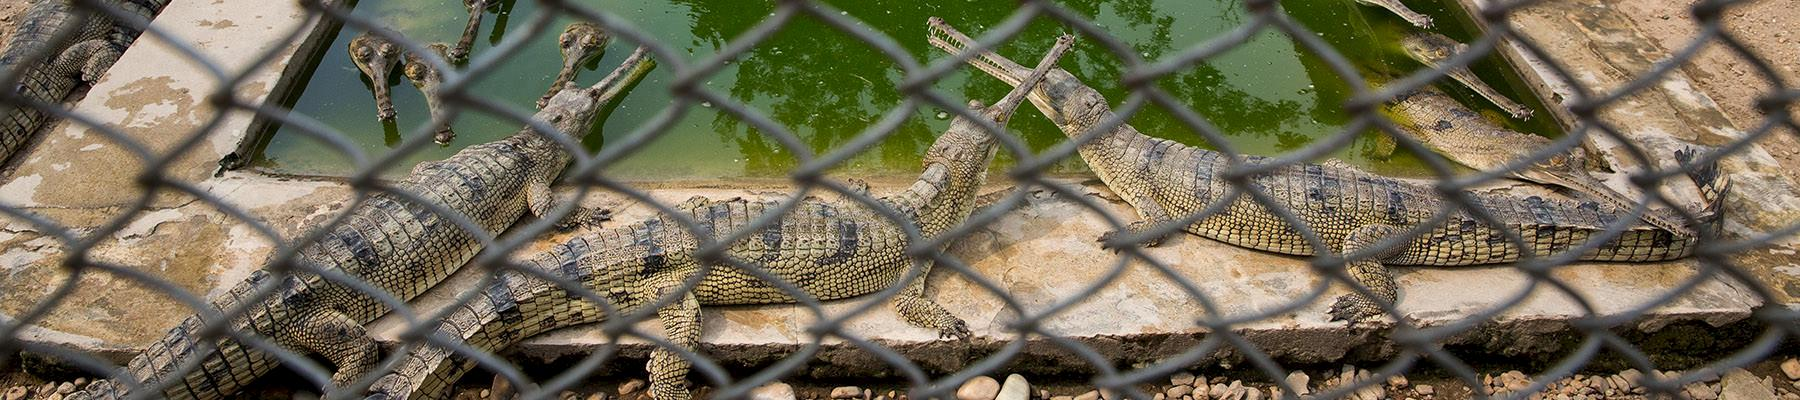 Captive Gharial's Gavialis gangeticus at the Royal Chitwan National Park and Gharial Breeding Center in Nepal © Karine Aigner / WWF-US